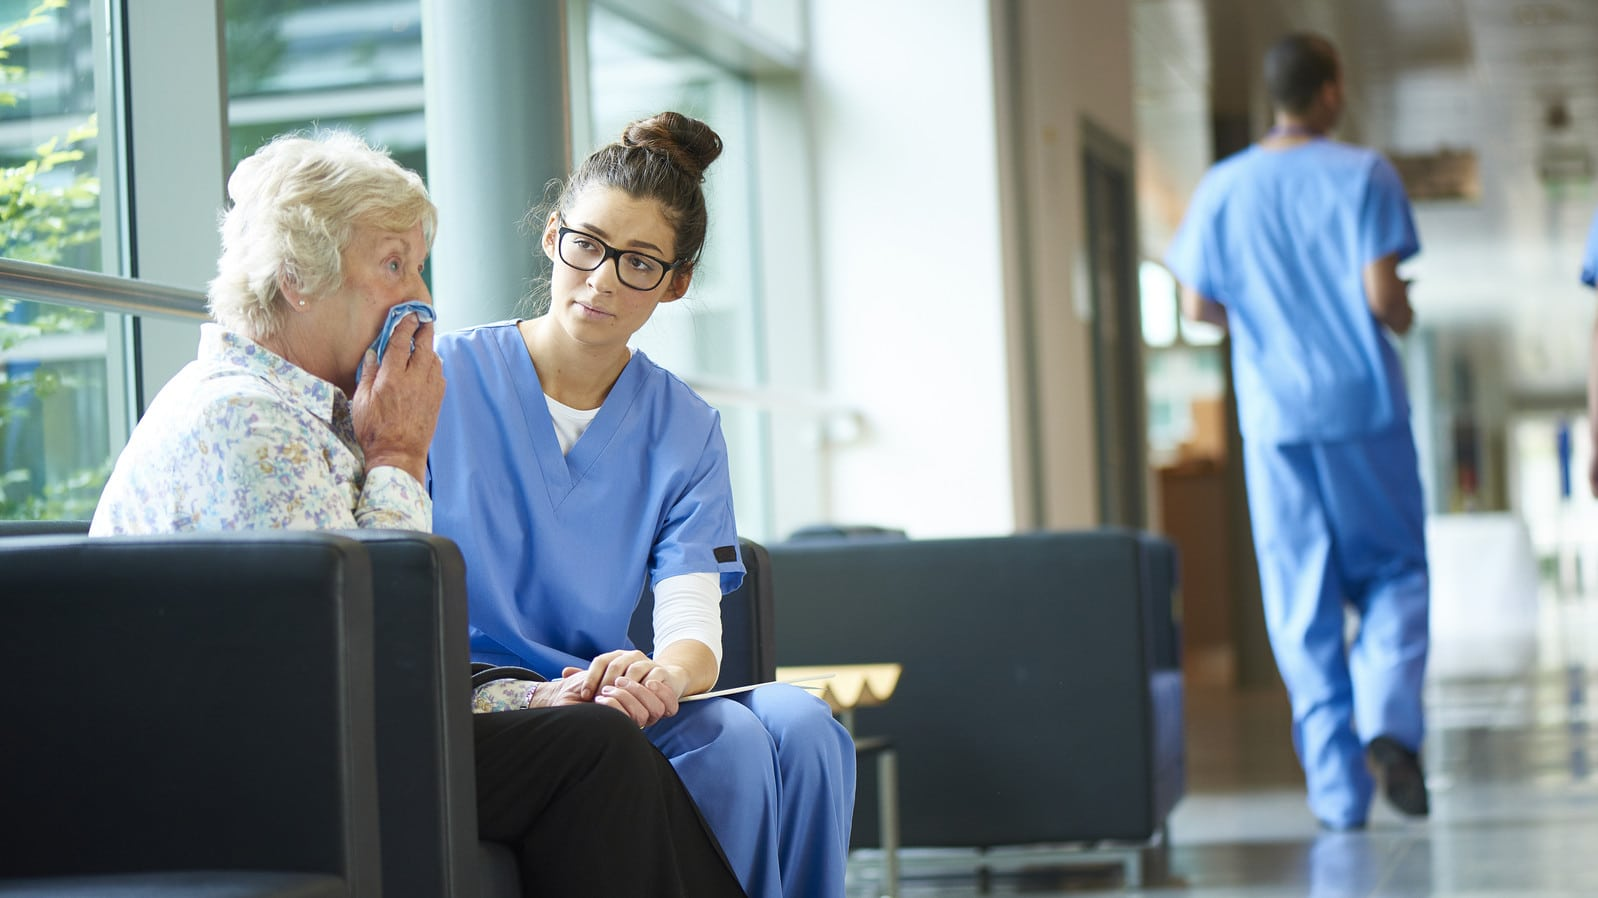 Nurse Consoling Elderly Woman Stock Photo